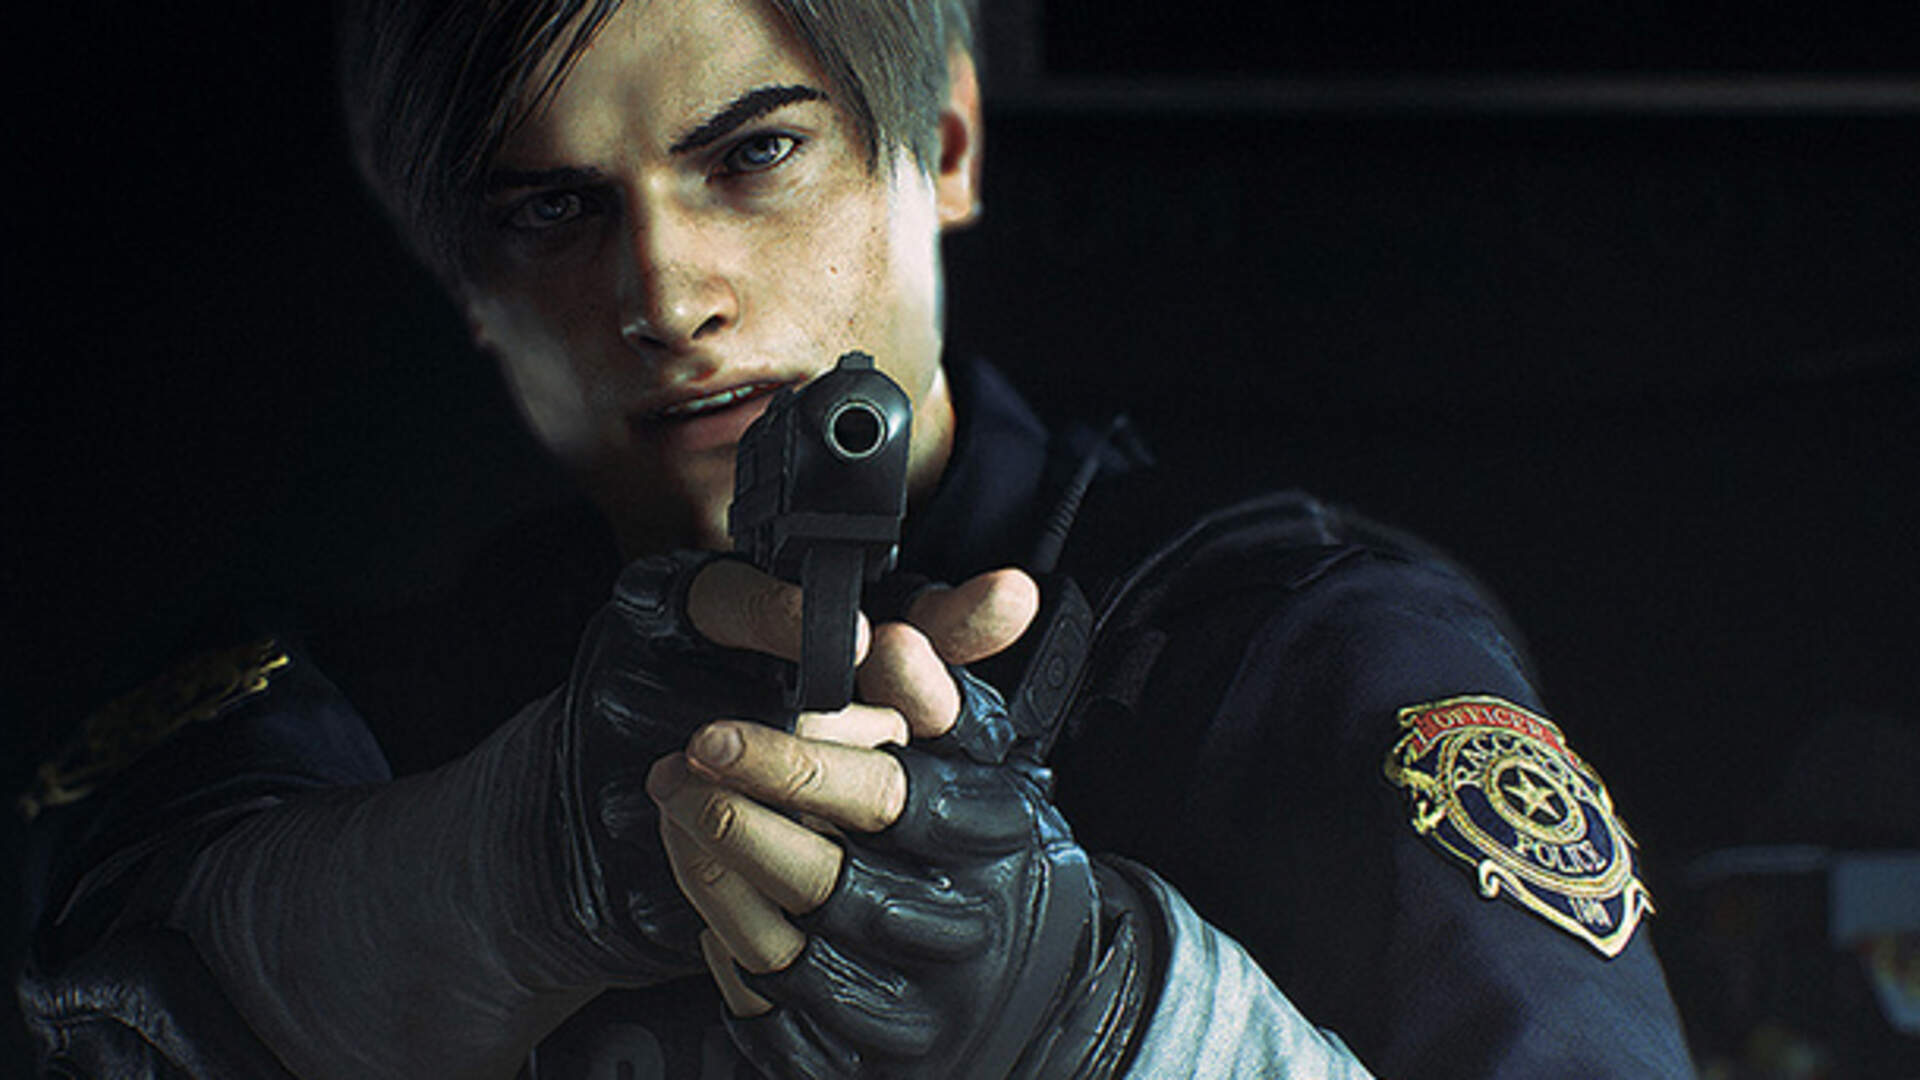 Original Resident Evil 2 Composer Returning for the Remake